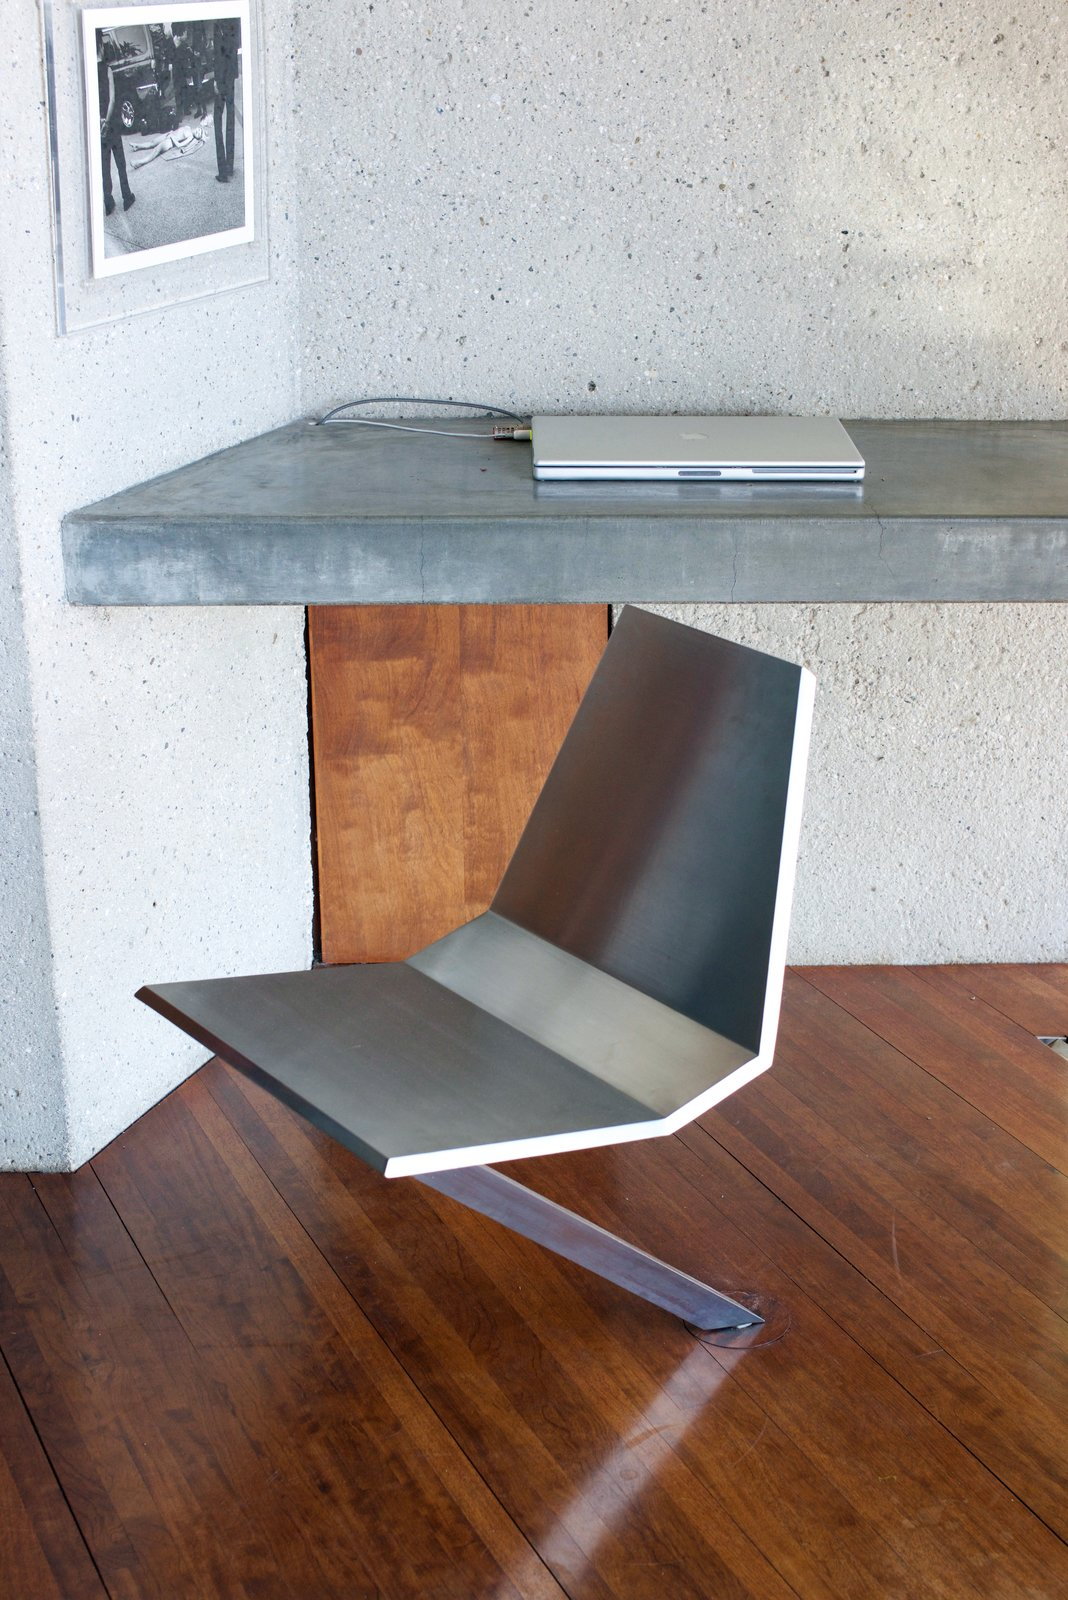 Throughout the house, we were shown a number of Lautner-designed pieces of furniture. Working with Goldstein, Lautner was given the opportunity to design custom furniture pieces, which is something he didn't normally get the chance to do. His angular, minimalist style was carried throughout—as shown here on a custom swivel desk chair that rotates from the floor of the bedroom.  Photo 7 of 9 in Iconic Perspectives: John Lautner's Sheats-Goldstein Residence